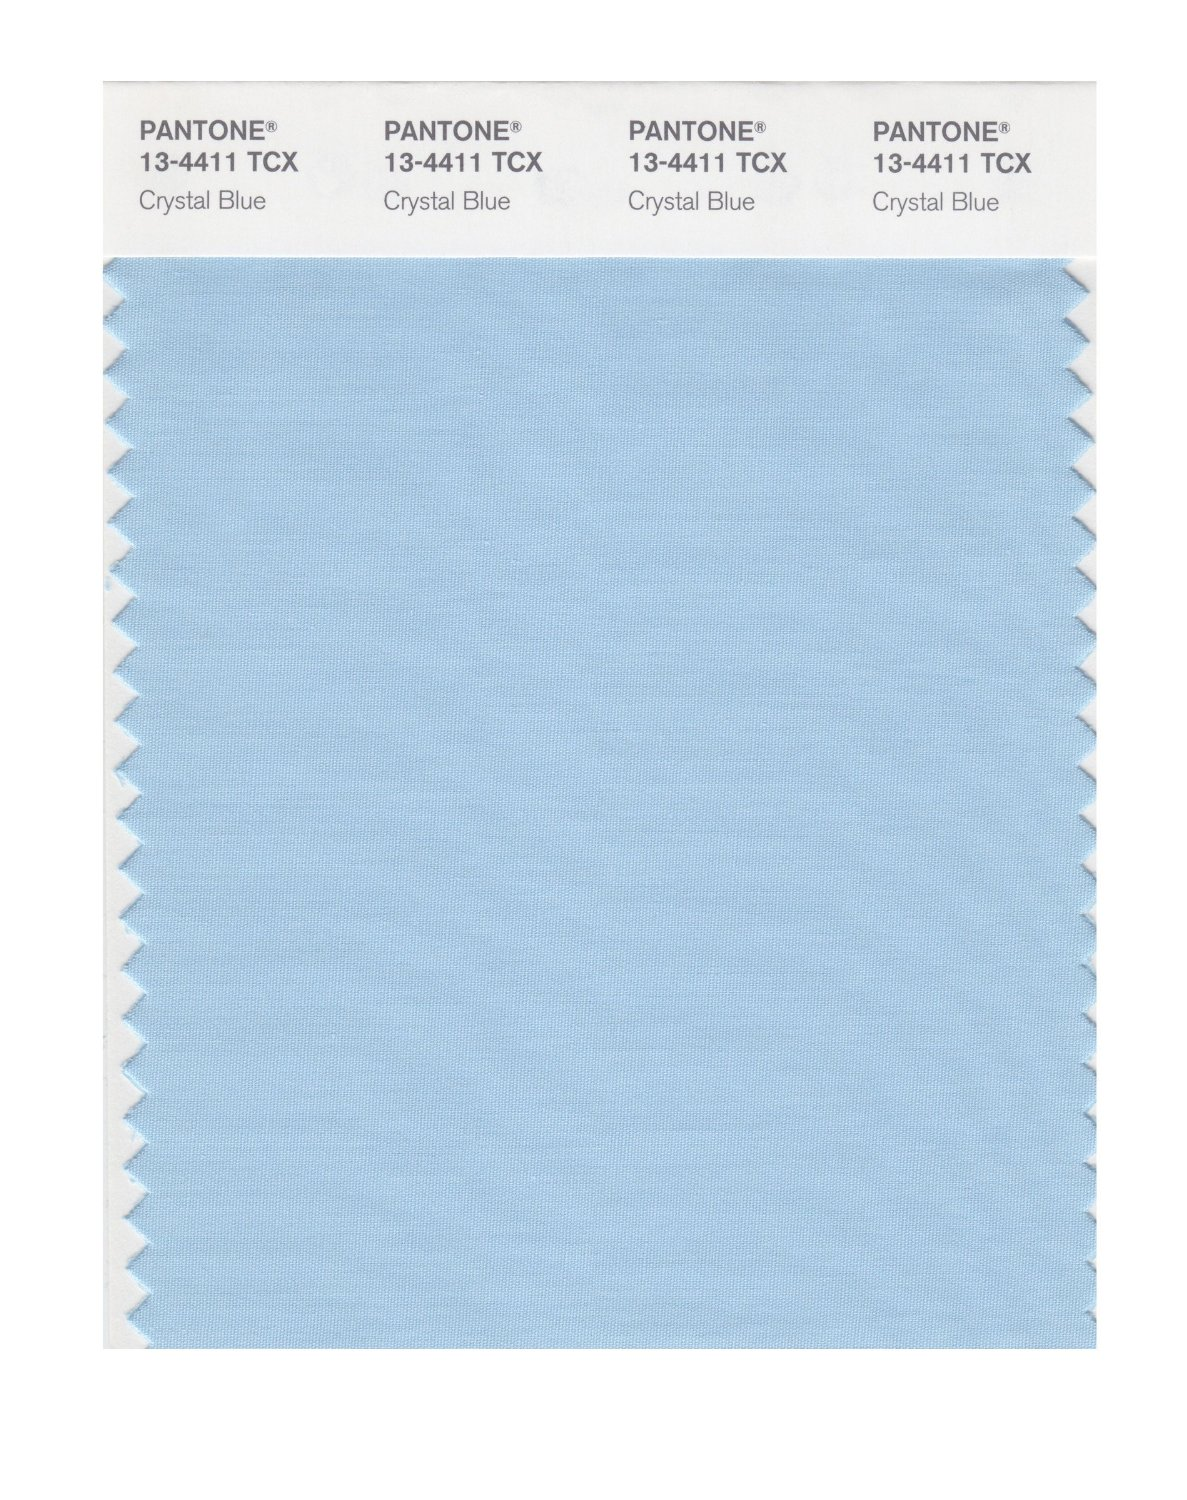 Pantone Smart Swatch 13-4411 Crystal Blue